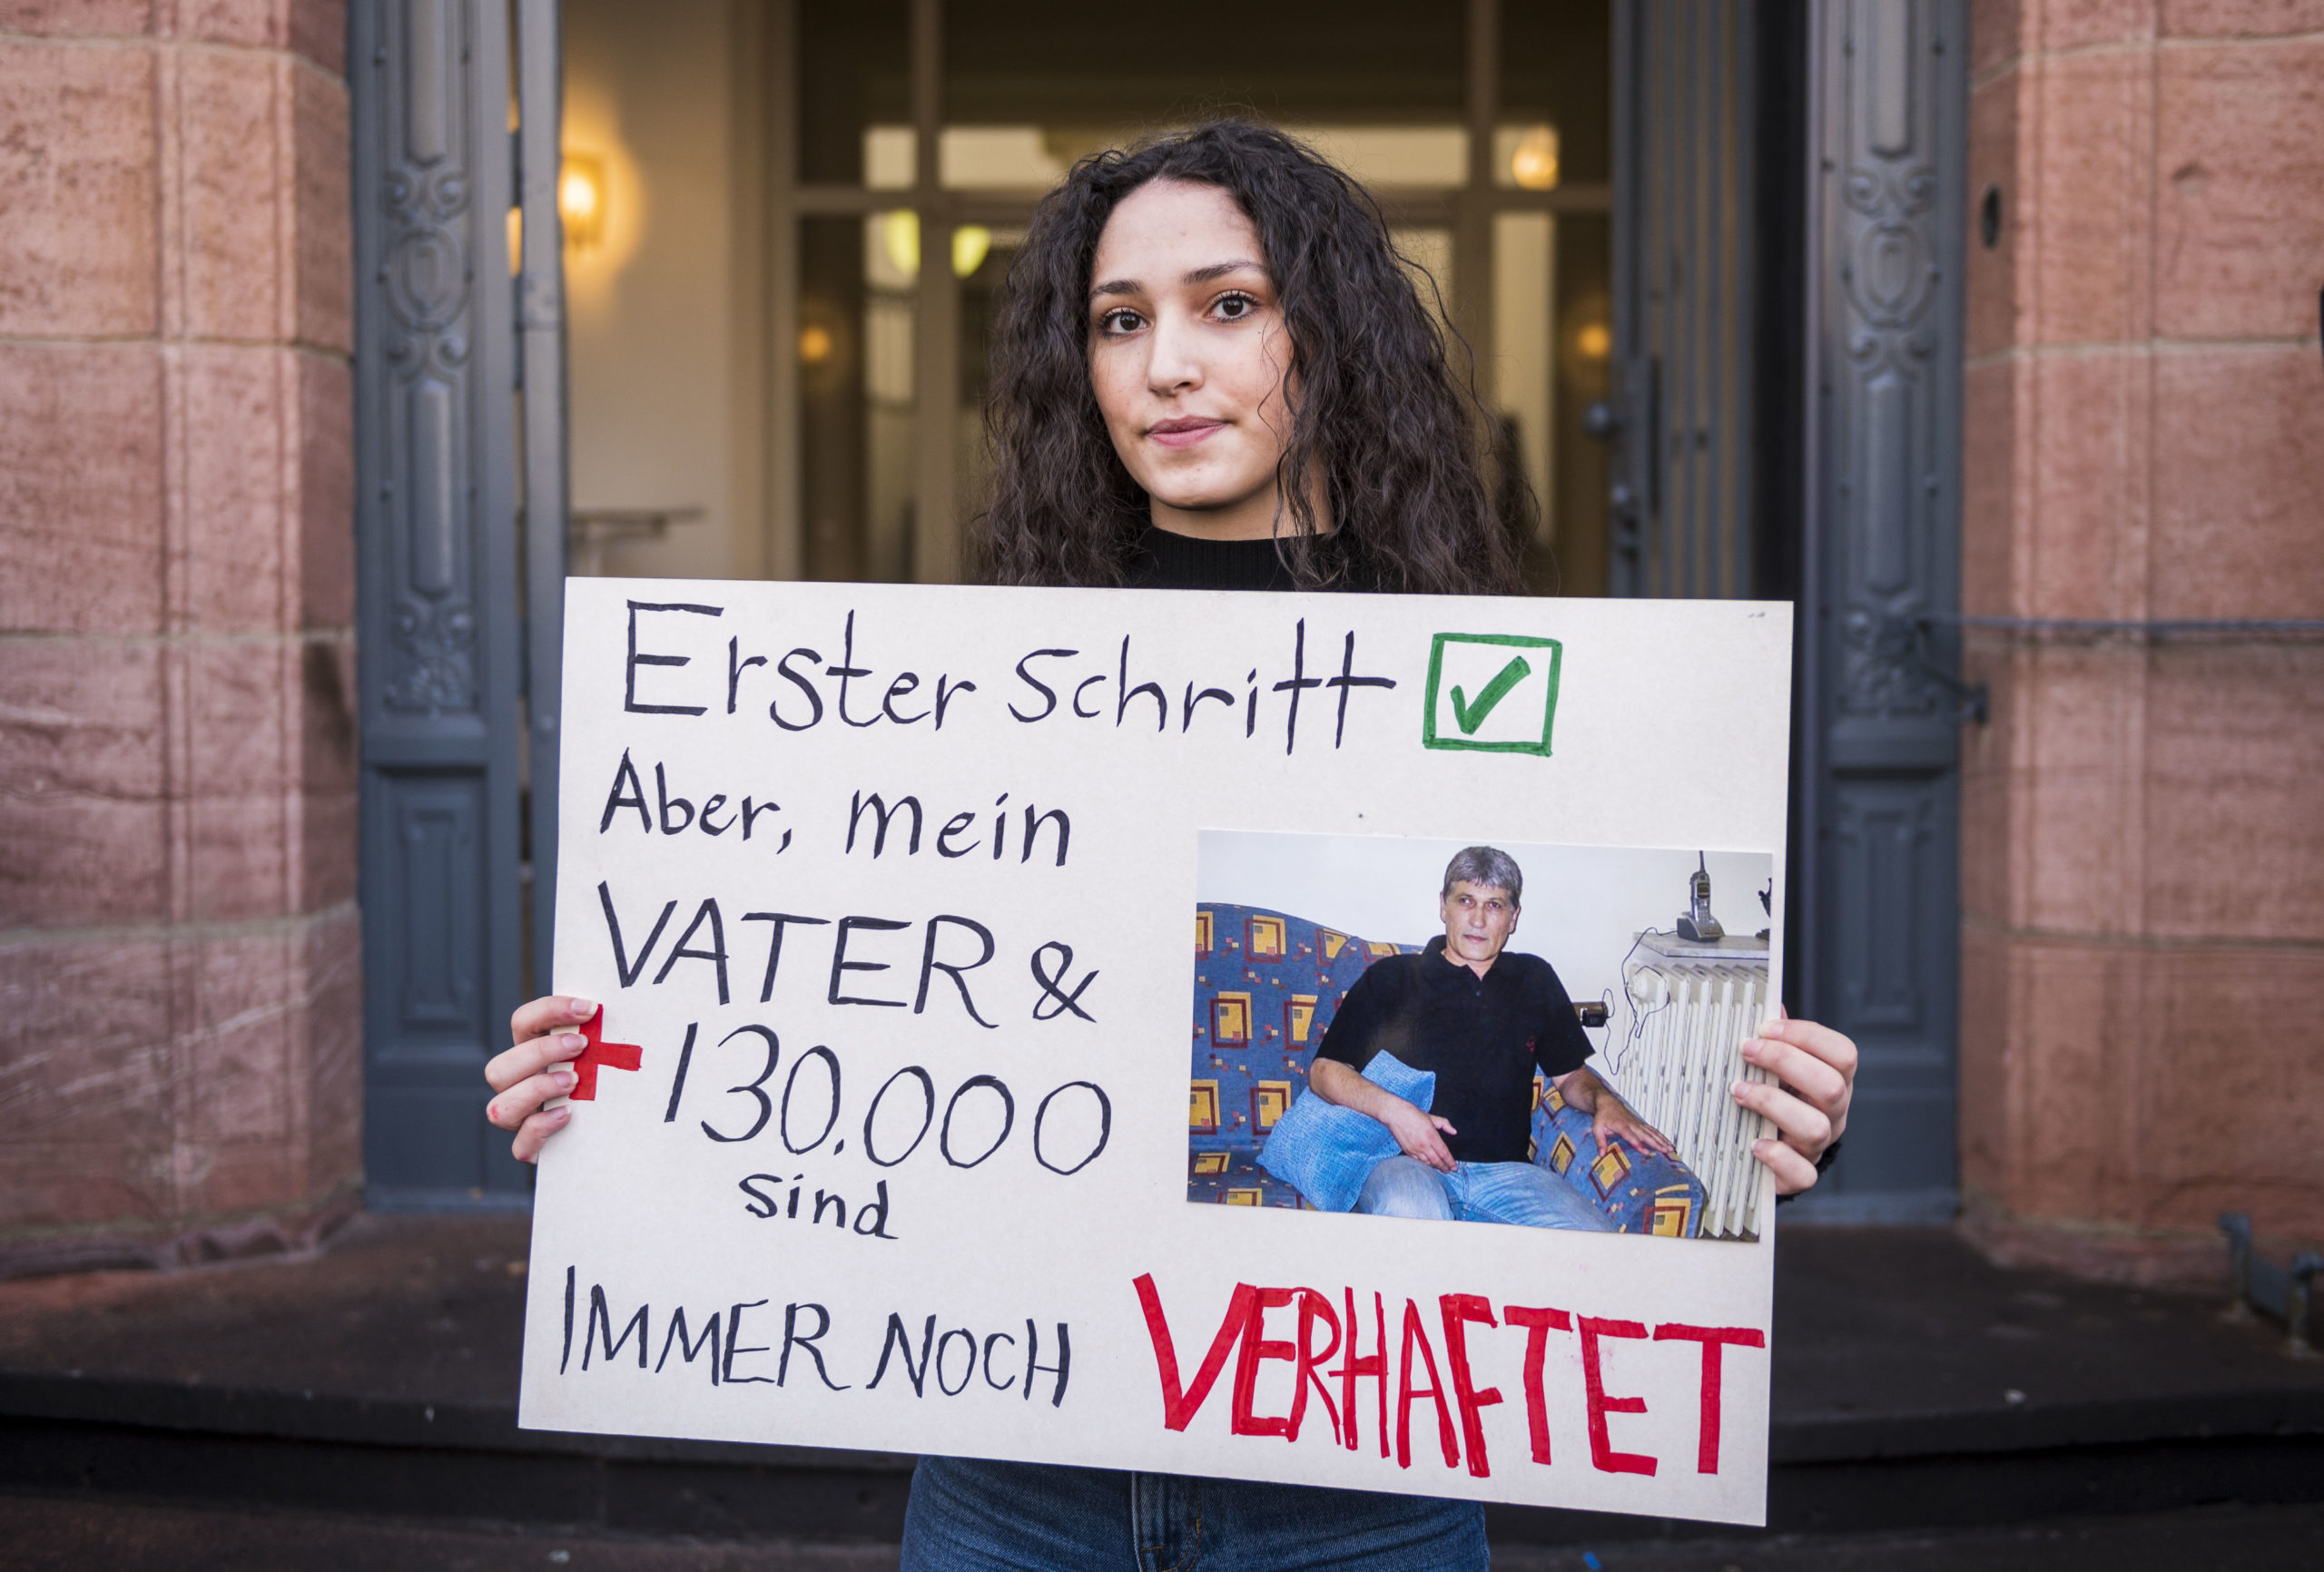 Sedra Alshehabi stands with a placard with the picture of her father Ali and a text reading 'First step but my father and 130000 are still in jail' after the verdict in the trail of Syrian defendant Eyad al-Gharib, accused of crimes against humanity in the first trial of its kind to emerge from the Syrian conflict on February 24, 2021 in Koblenz, western Germany. - Eyad al-Gharib, 44, former Syrian intelligence service agent was sentenced to four and a half years in jail for complicity in crimes against humanity in the first court case over state-sponsored torture by the Syrian government. (Photo by Thomas Lohnes/AFP via Getty Images)